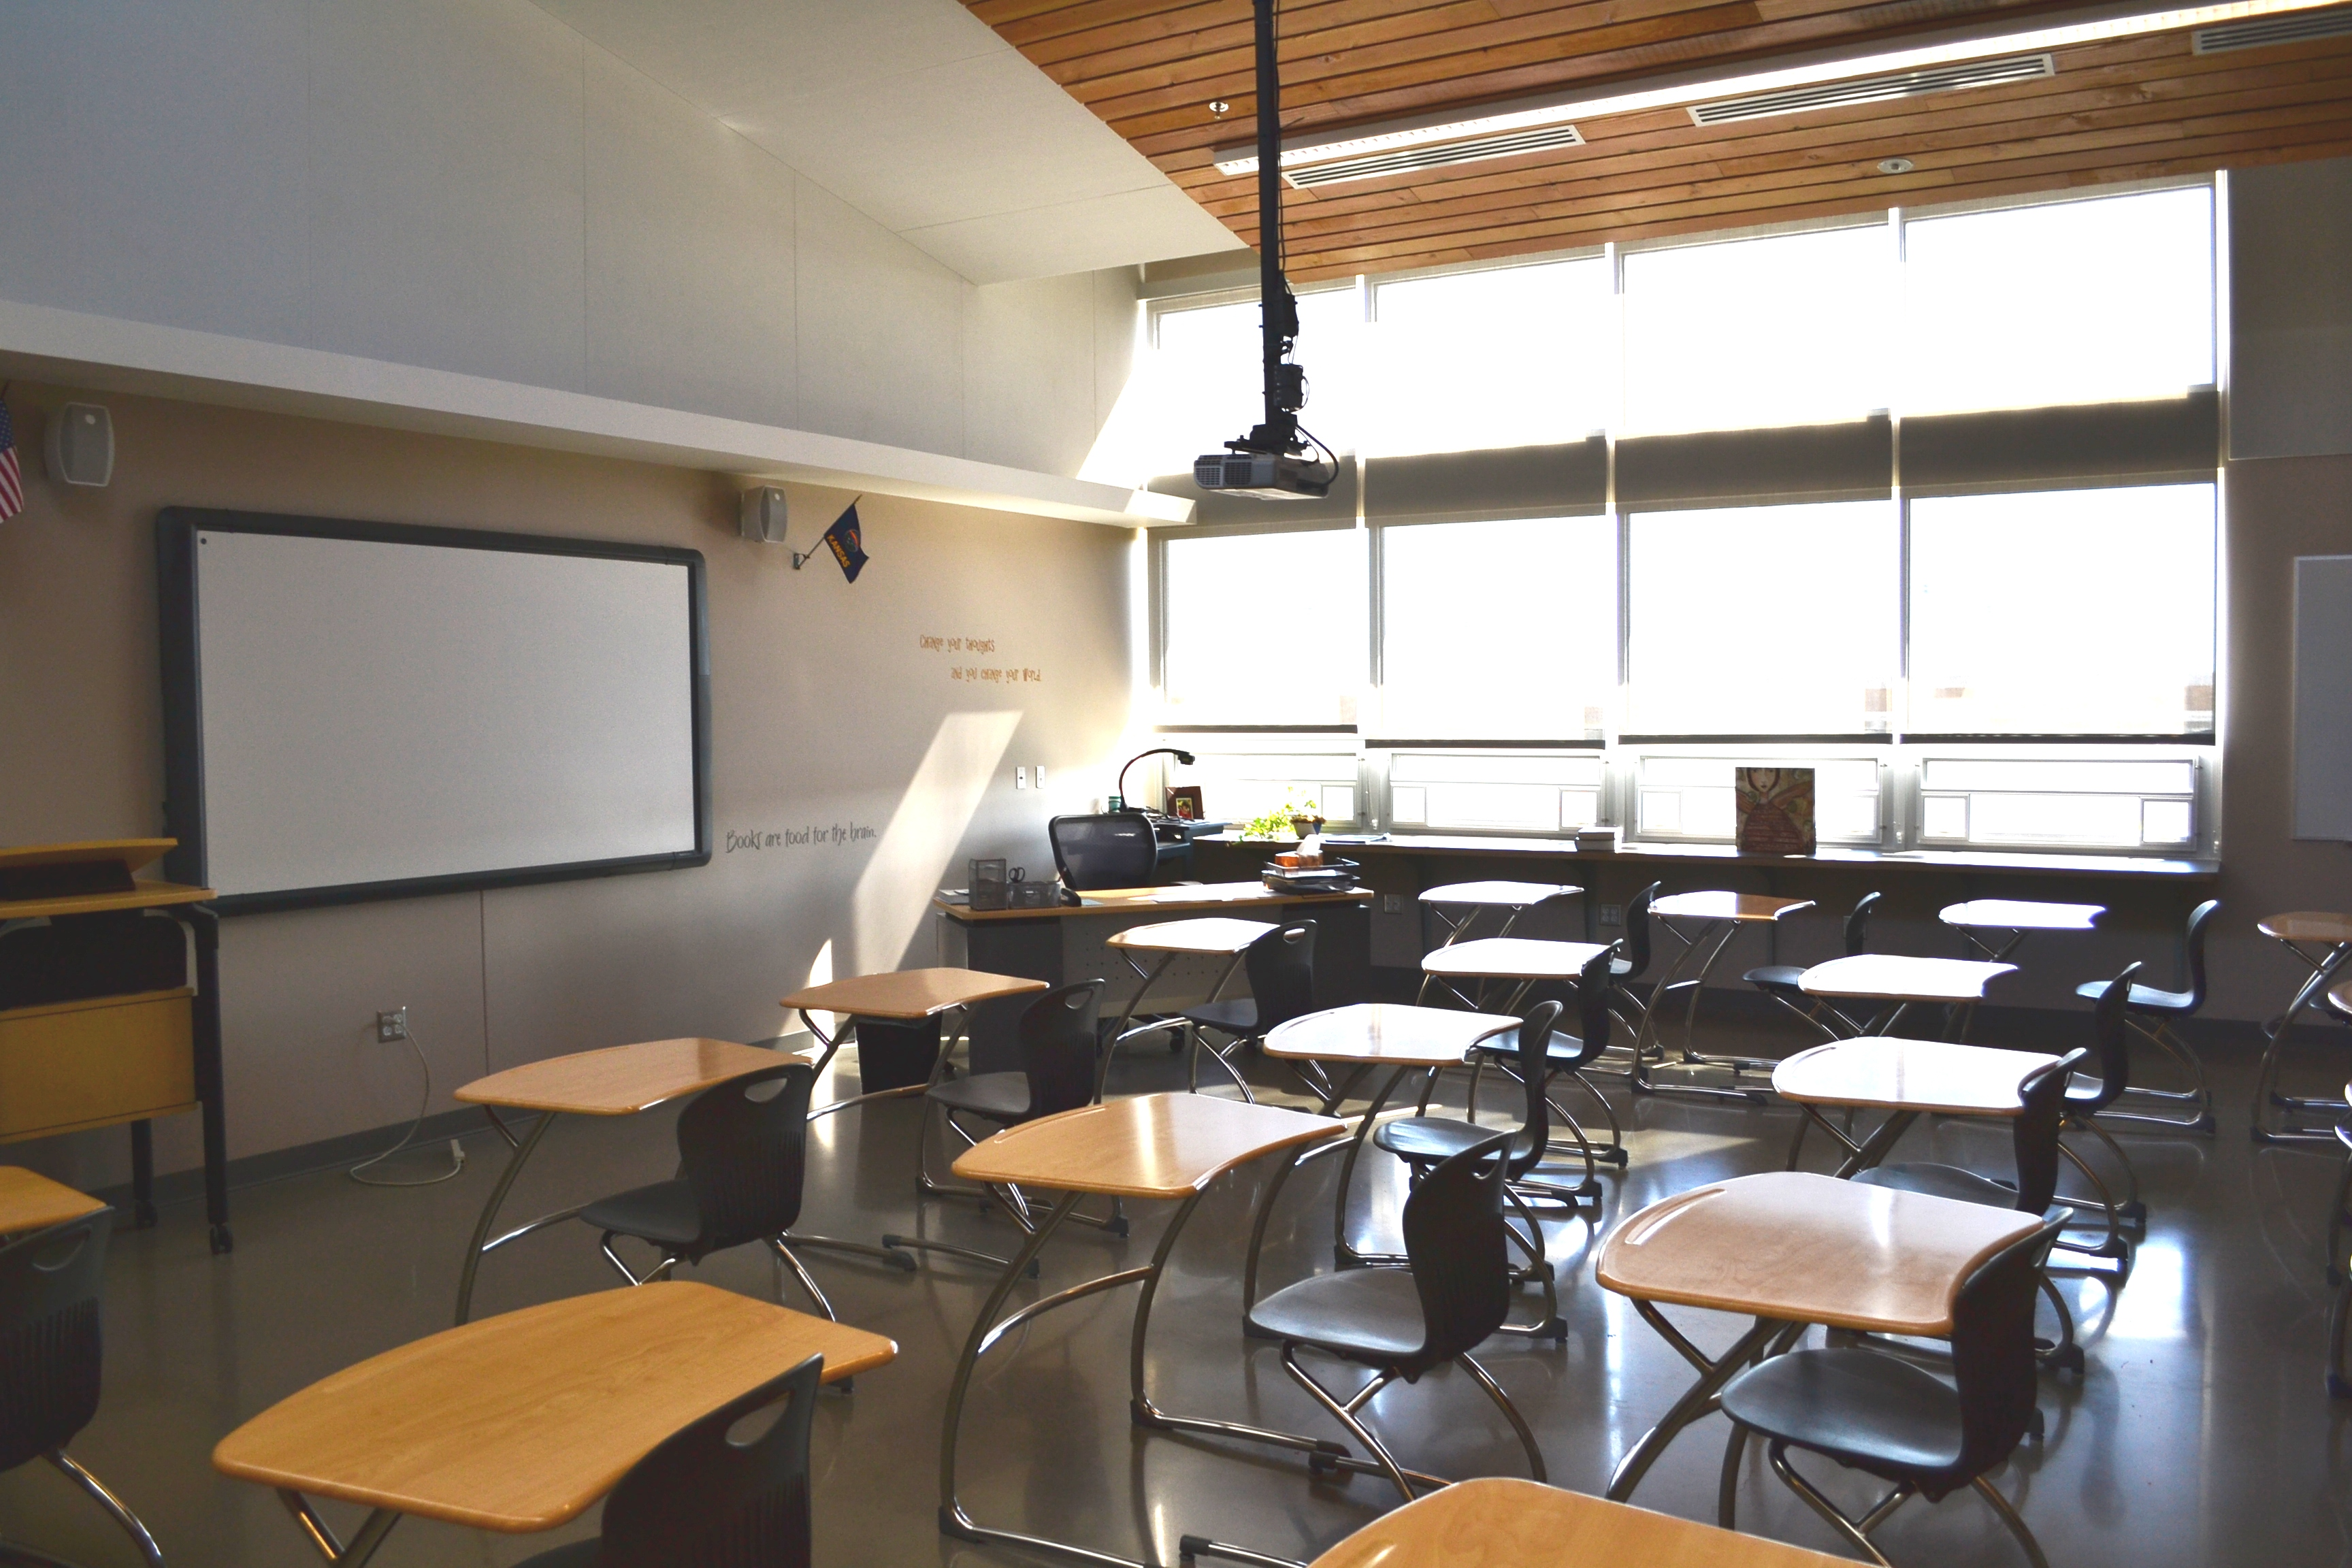 Classroom Design High School ~ Designing green schools that advance public health